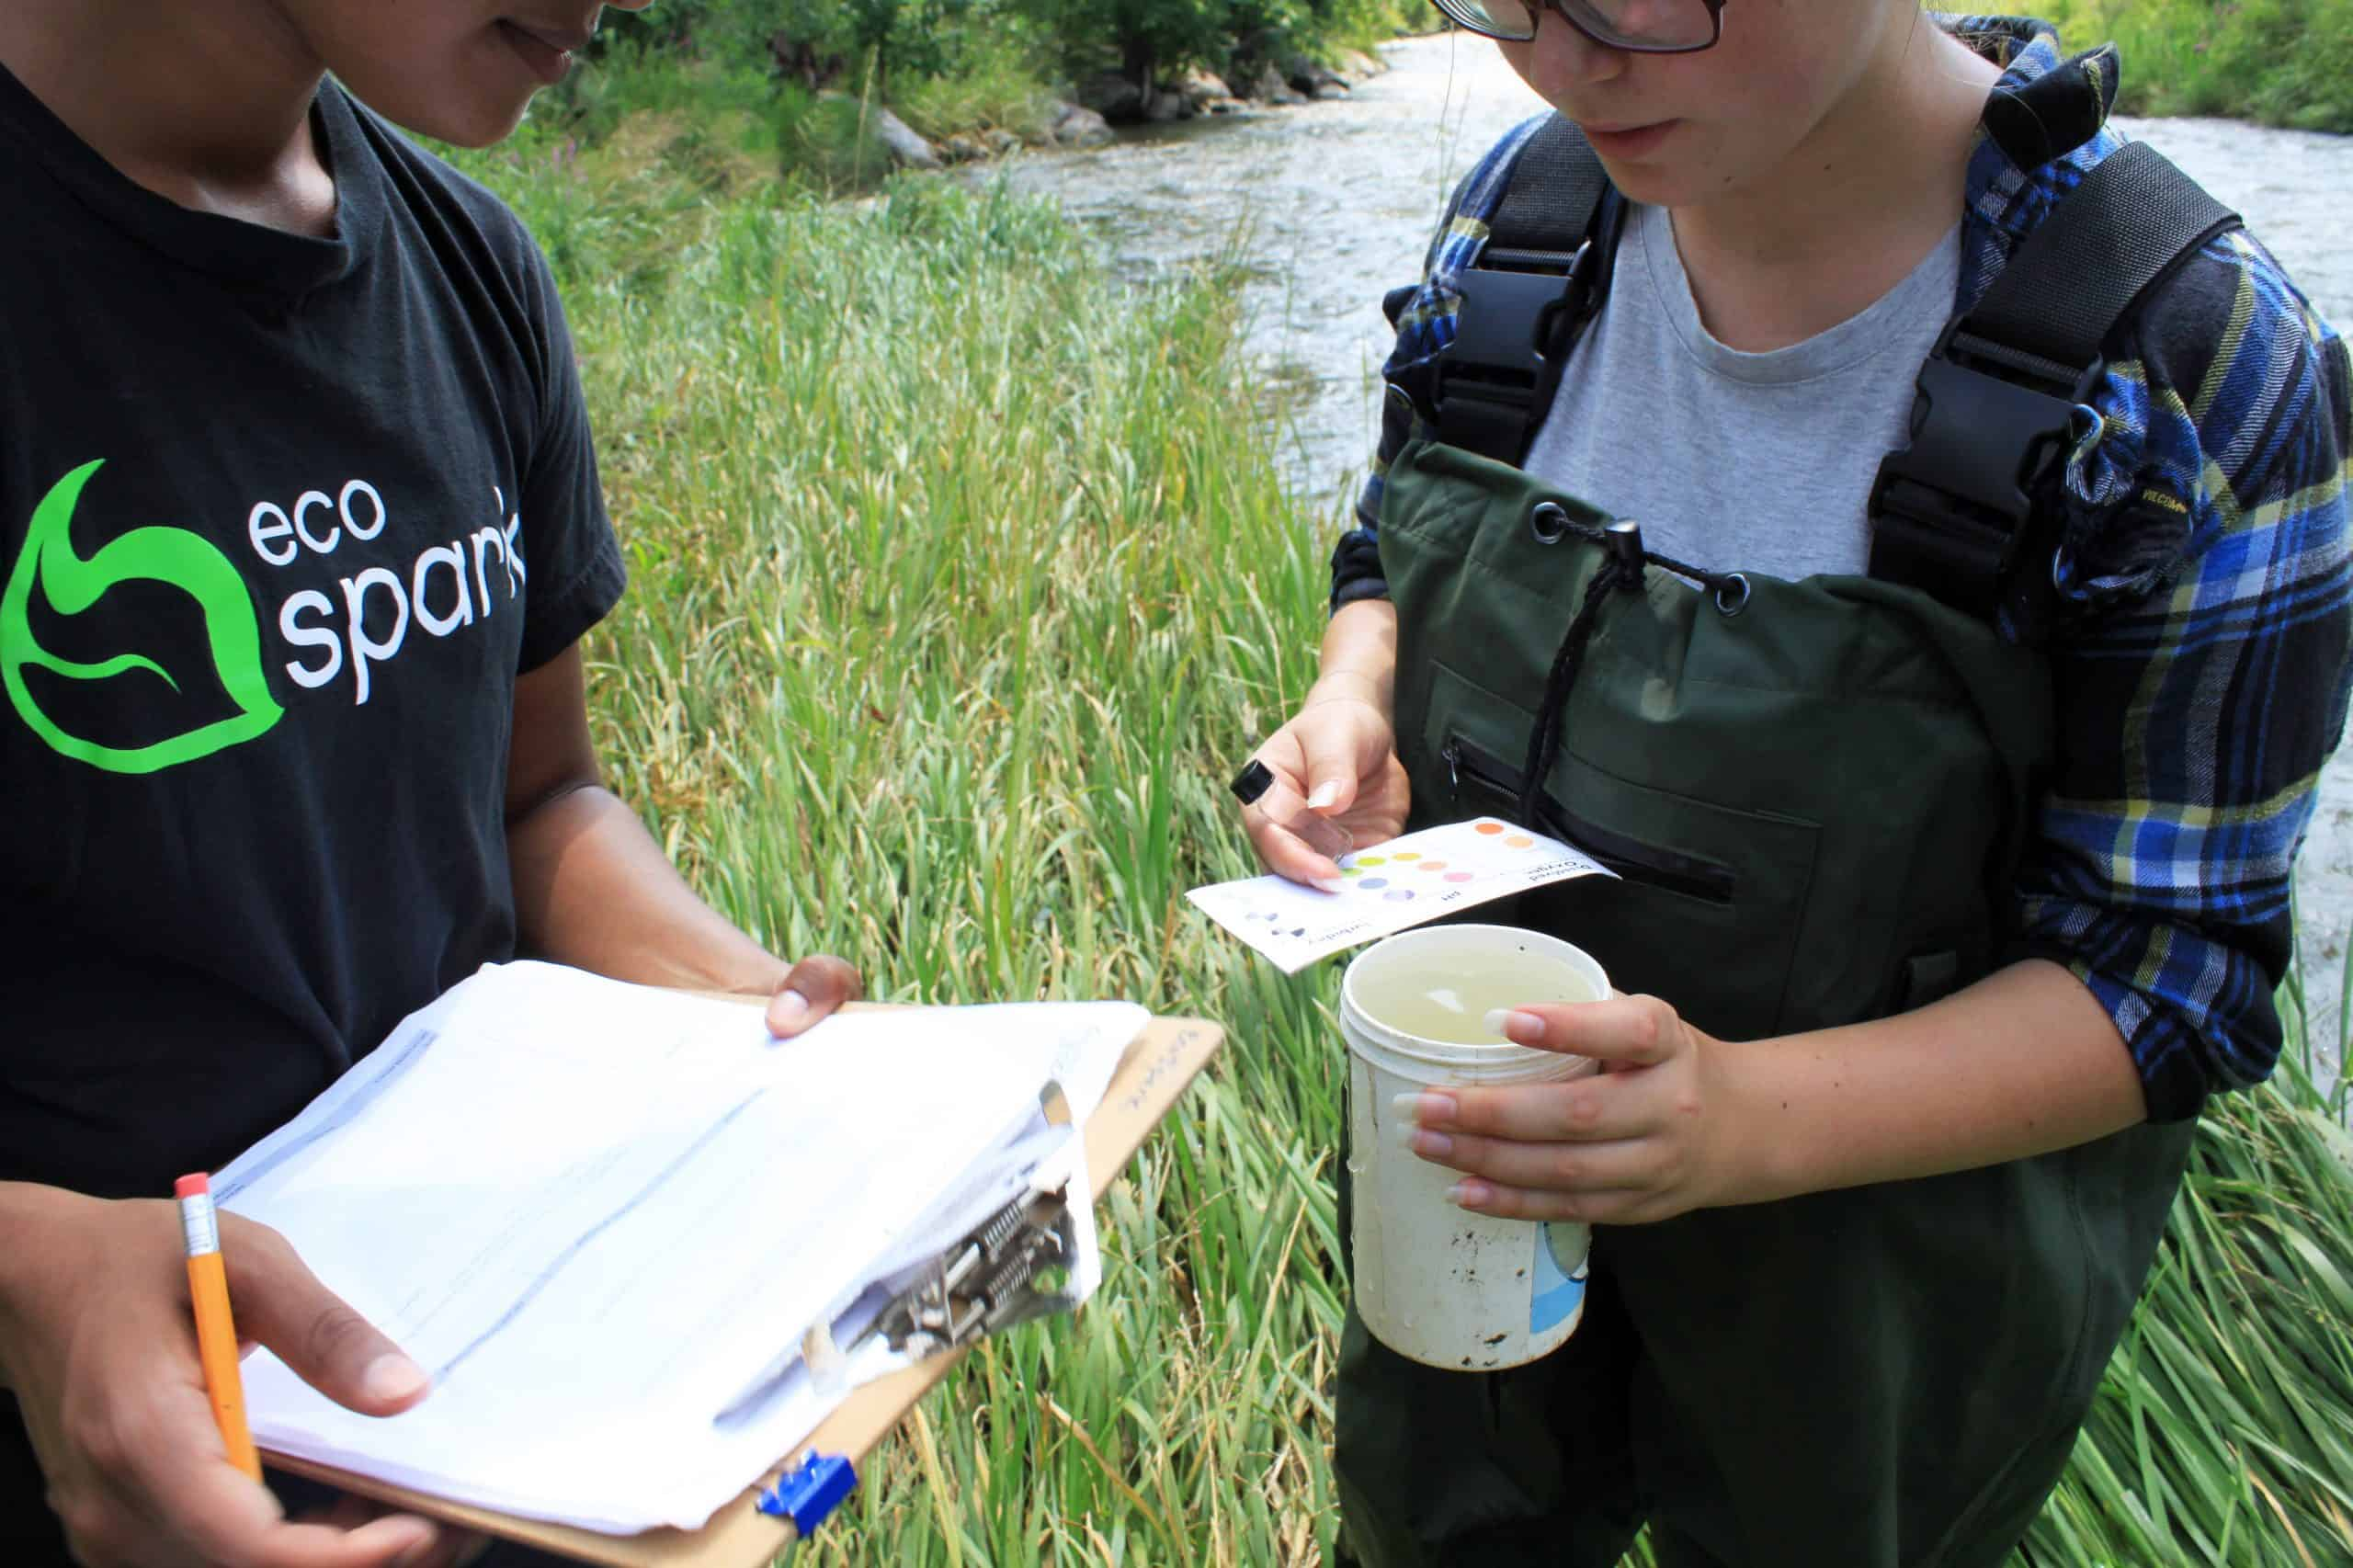 two teens holding a clipboard and monitoring equipment checking water quality in the stream behind them